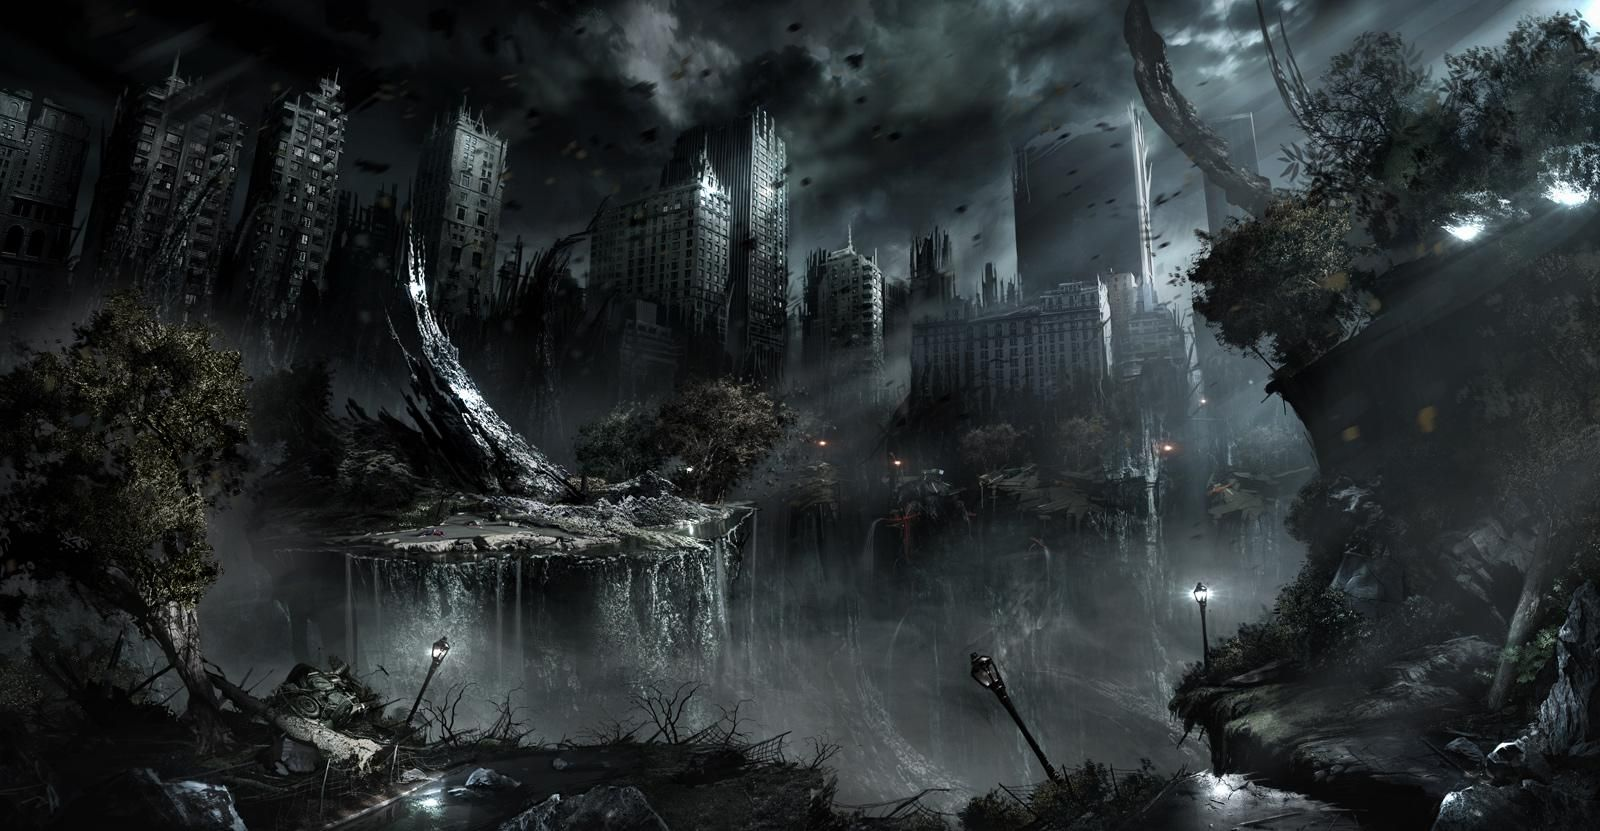 Post Apocalyptic Dystopian Wallpaper Dump As Requested By Rayquazasdarkbrother Album On Imgur Fantasy Landscape Fantasy Pictures Landscape Wallpaper